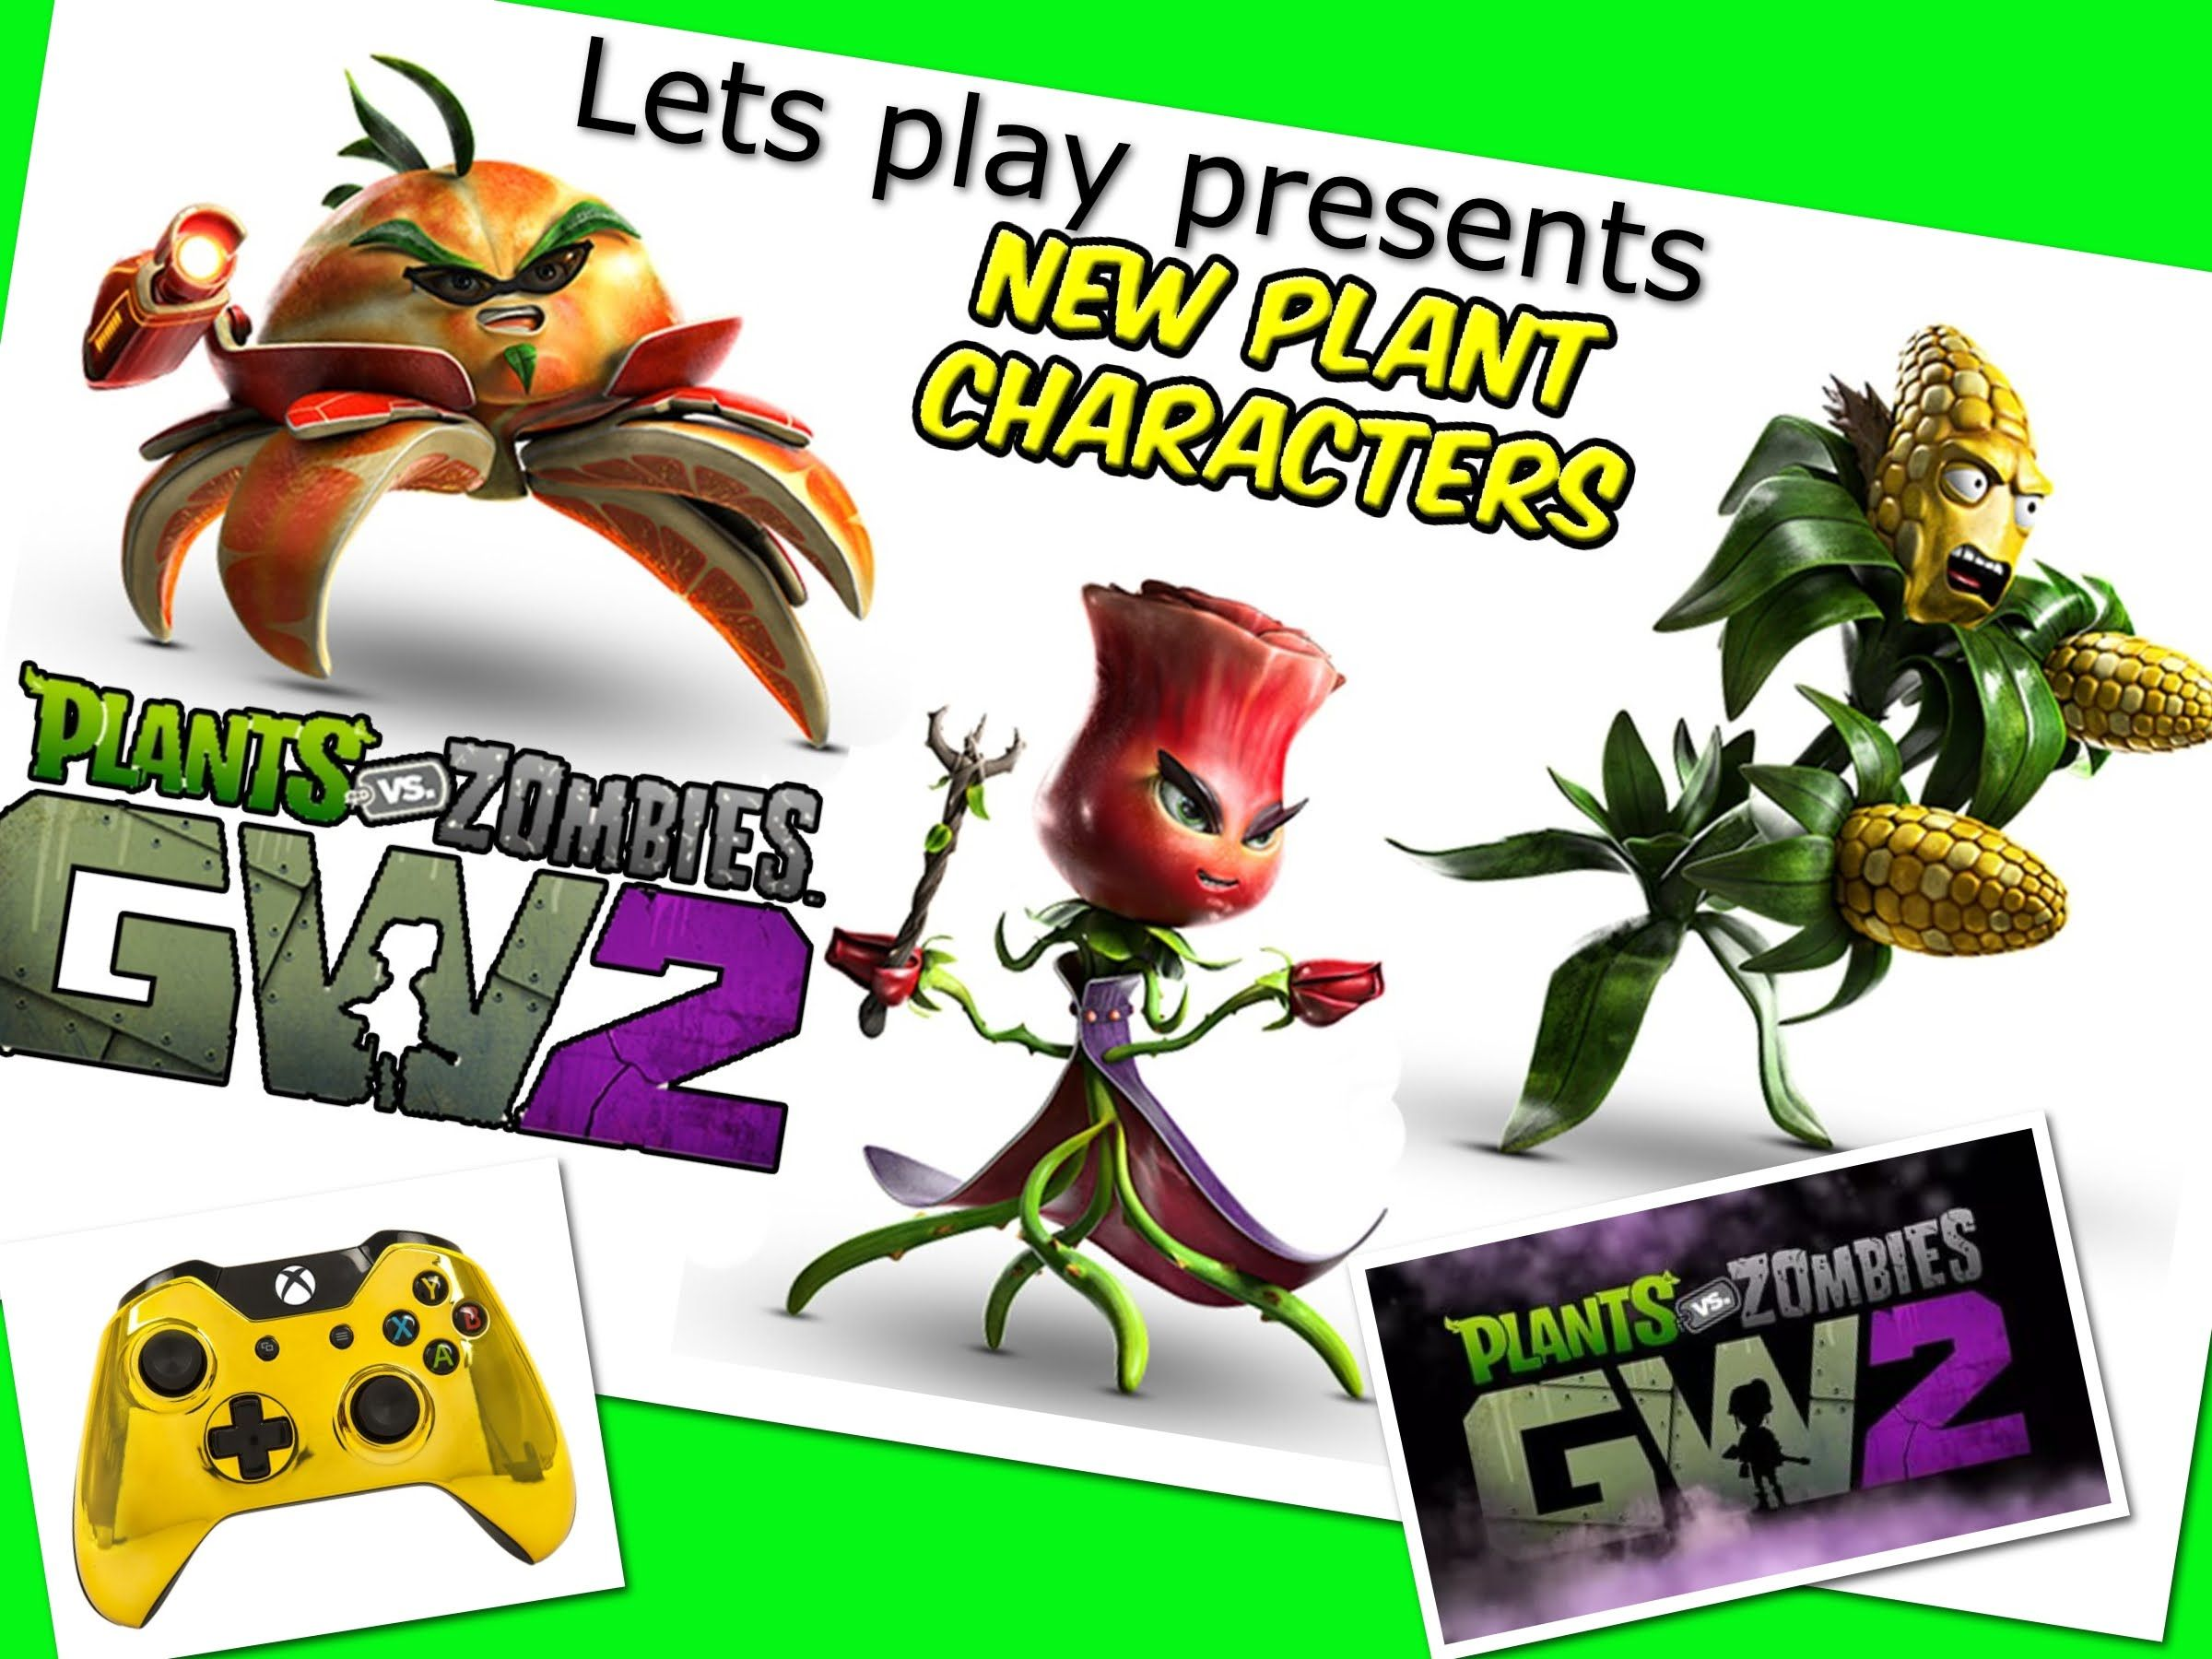 Plants vs zombies garden warfare 2 beta new plant - Plants vs zombies garden warfare xbox one ...